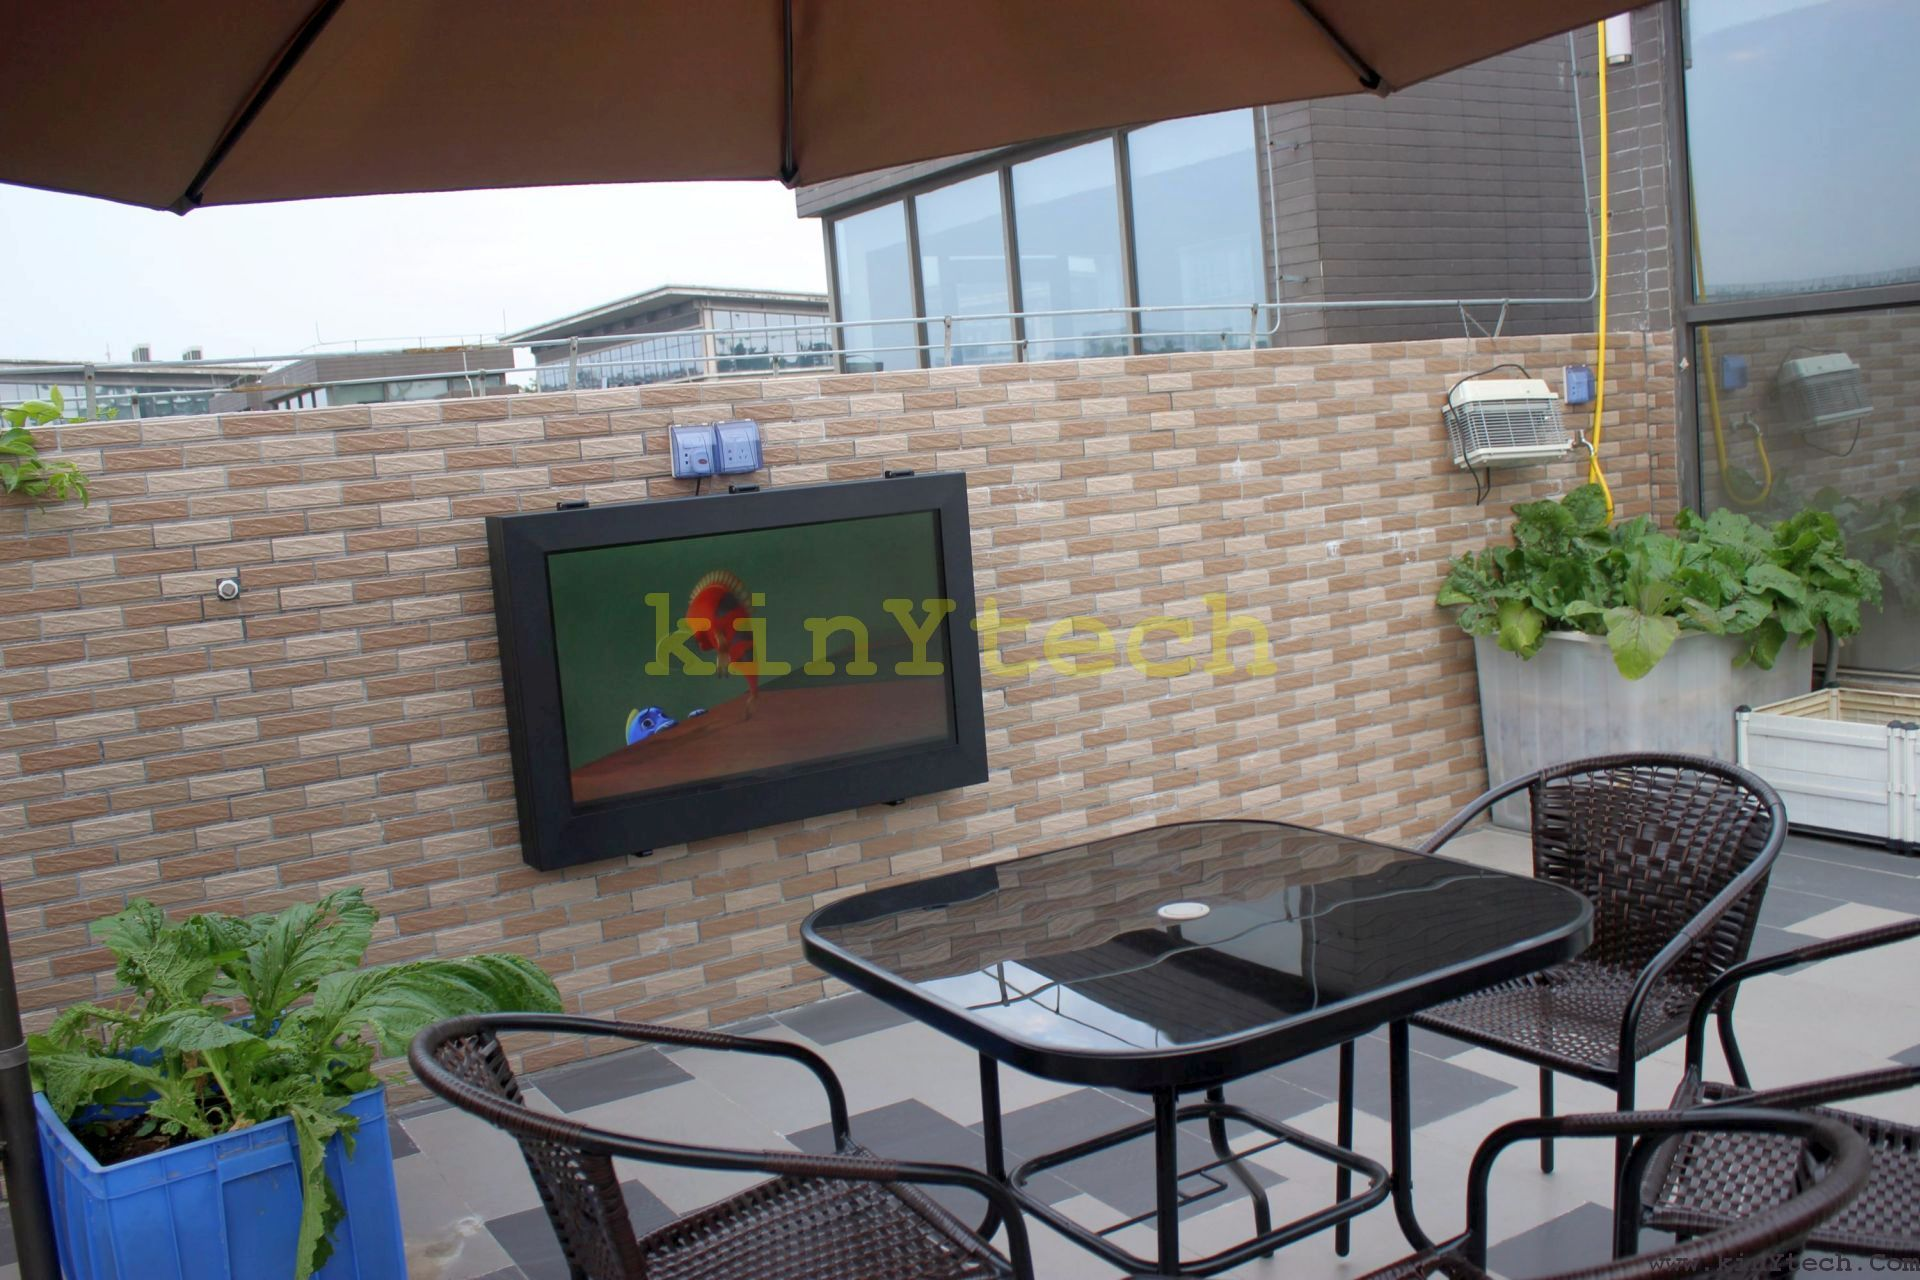 Outdoor Tv Enclosure,outdoor Tv Mount,weatherproof Tv Enclosure,outdoor  Screen Enclosure,